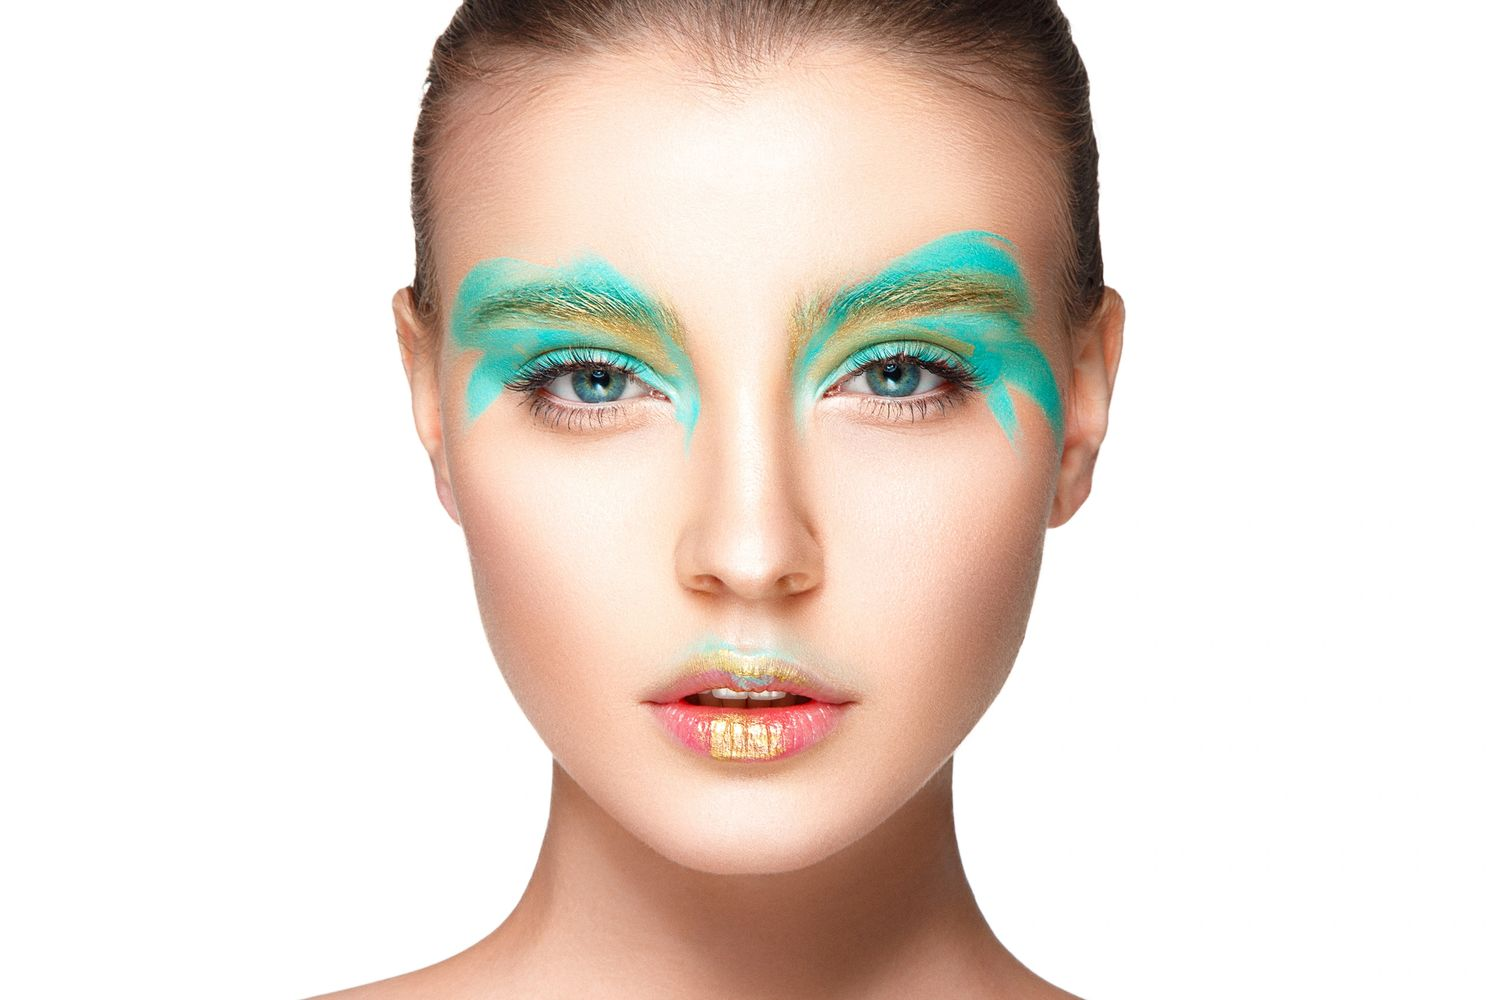 Beautiful woman with teal eye shadow and gold flecked lip